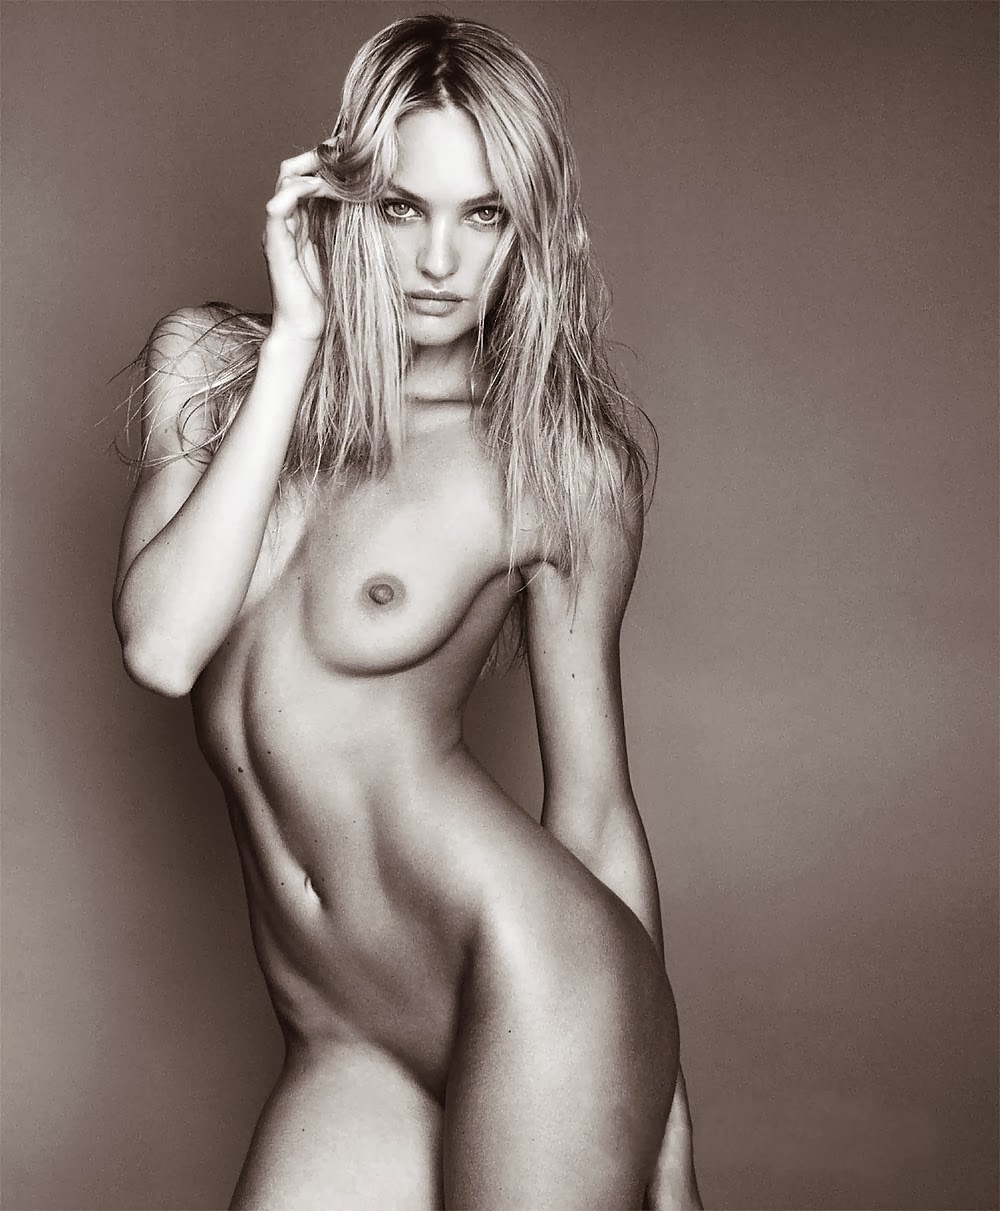 Know site Candice swanepoel so sexy nude pussy protest